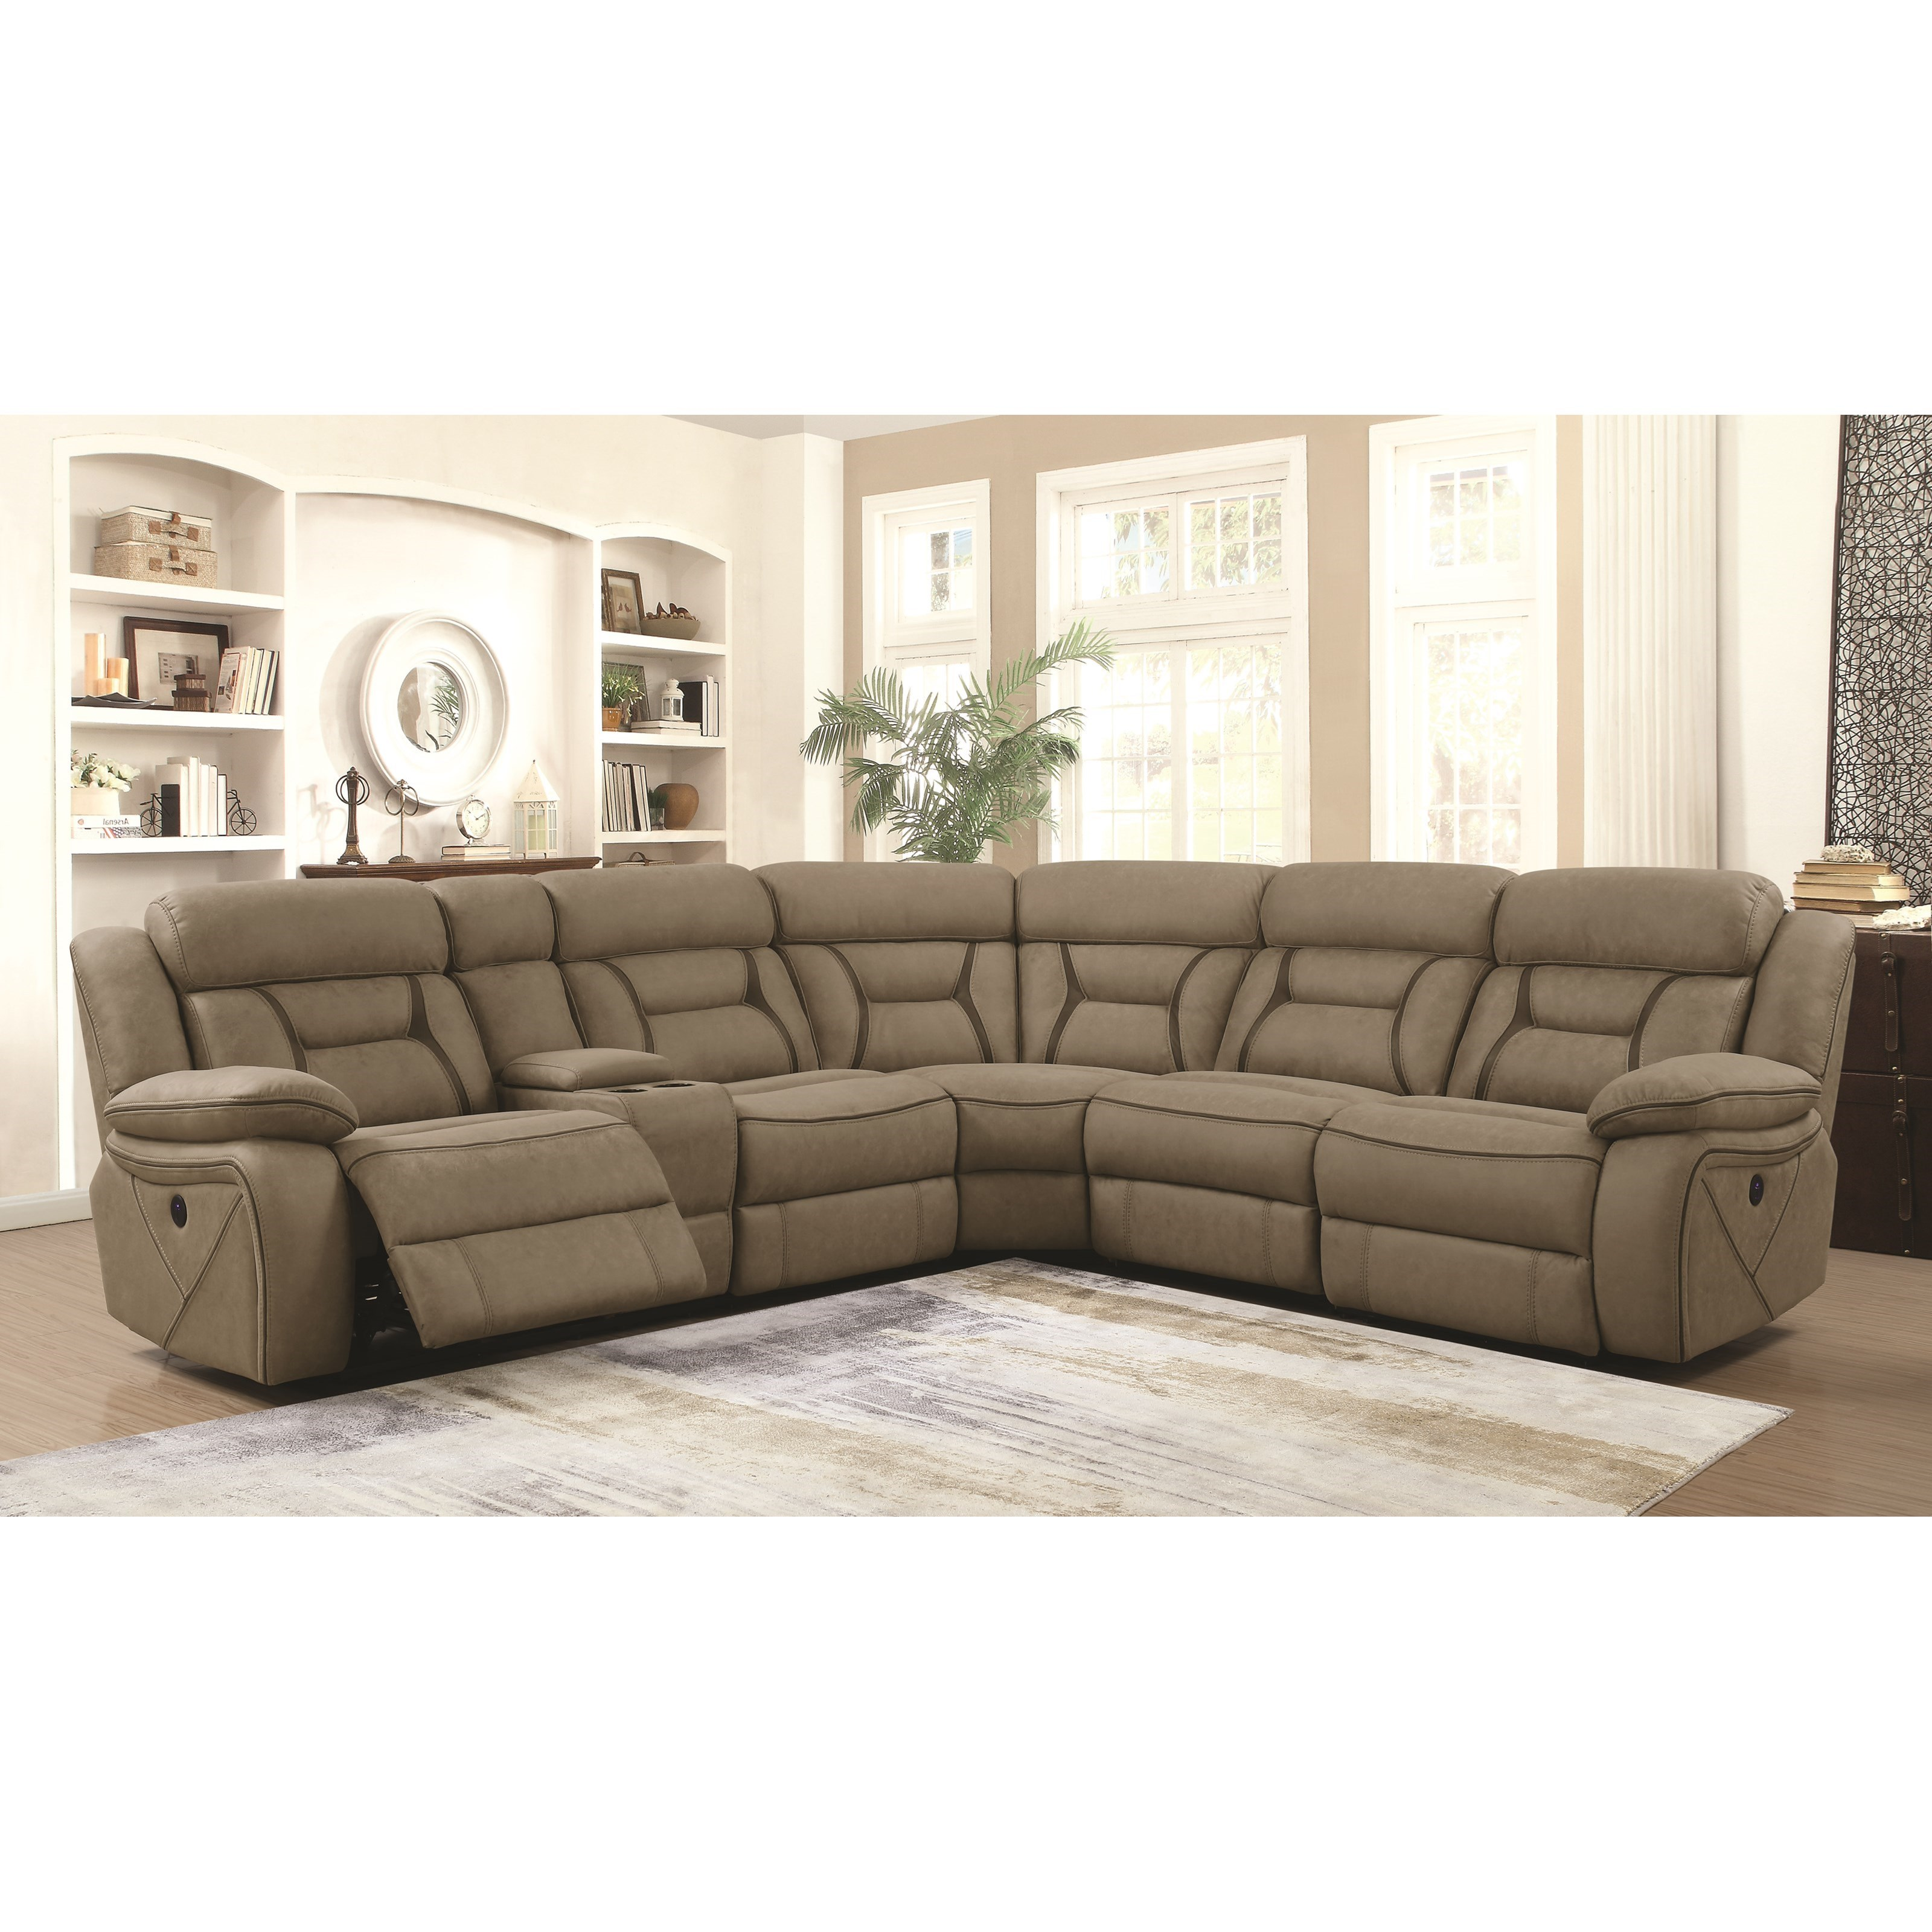 Camargue Reclining Sectional by Coaster at Northeast Factory Direct